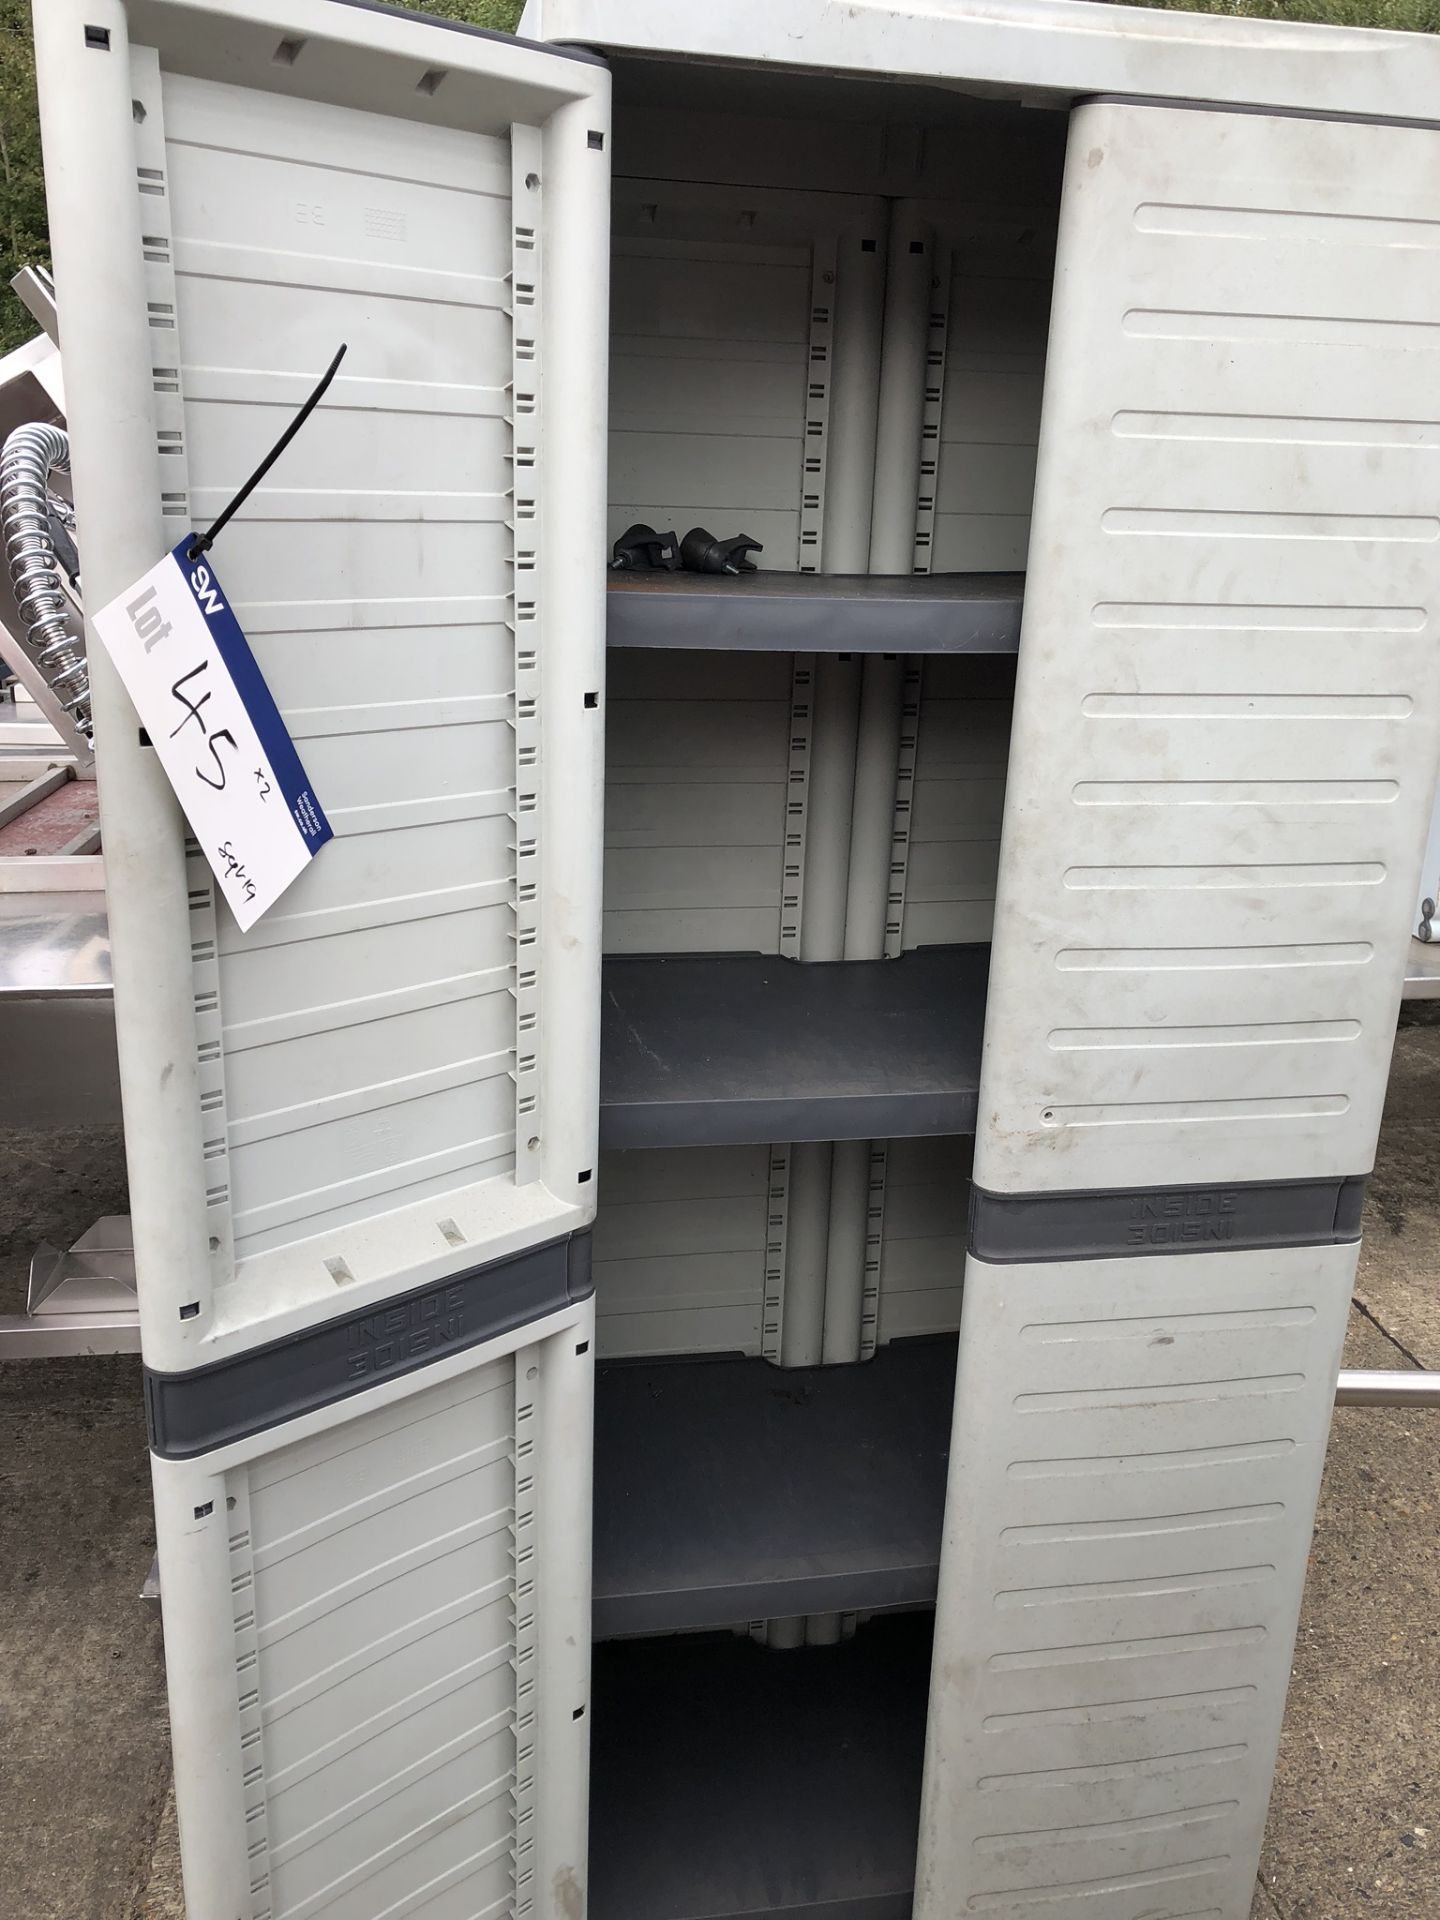 Lotto 45 - Two Plastic Cupboards, approx. 0.7m x 0.5m x 1.8m high, lift out charge - £20